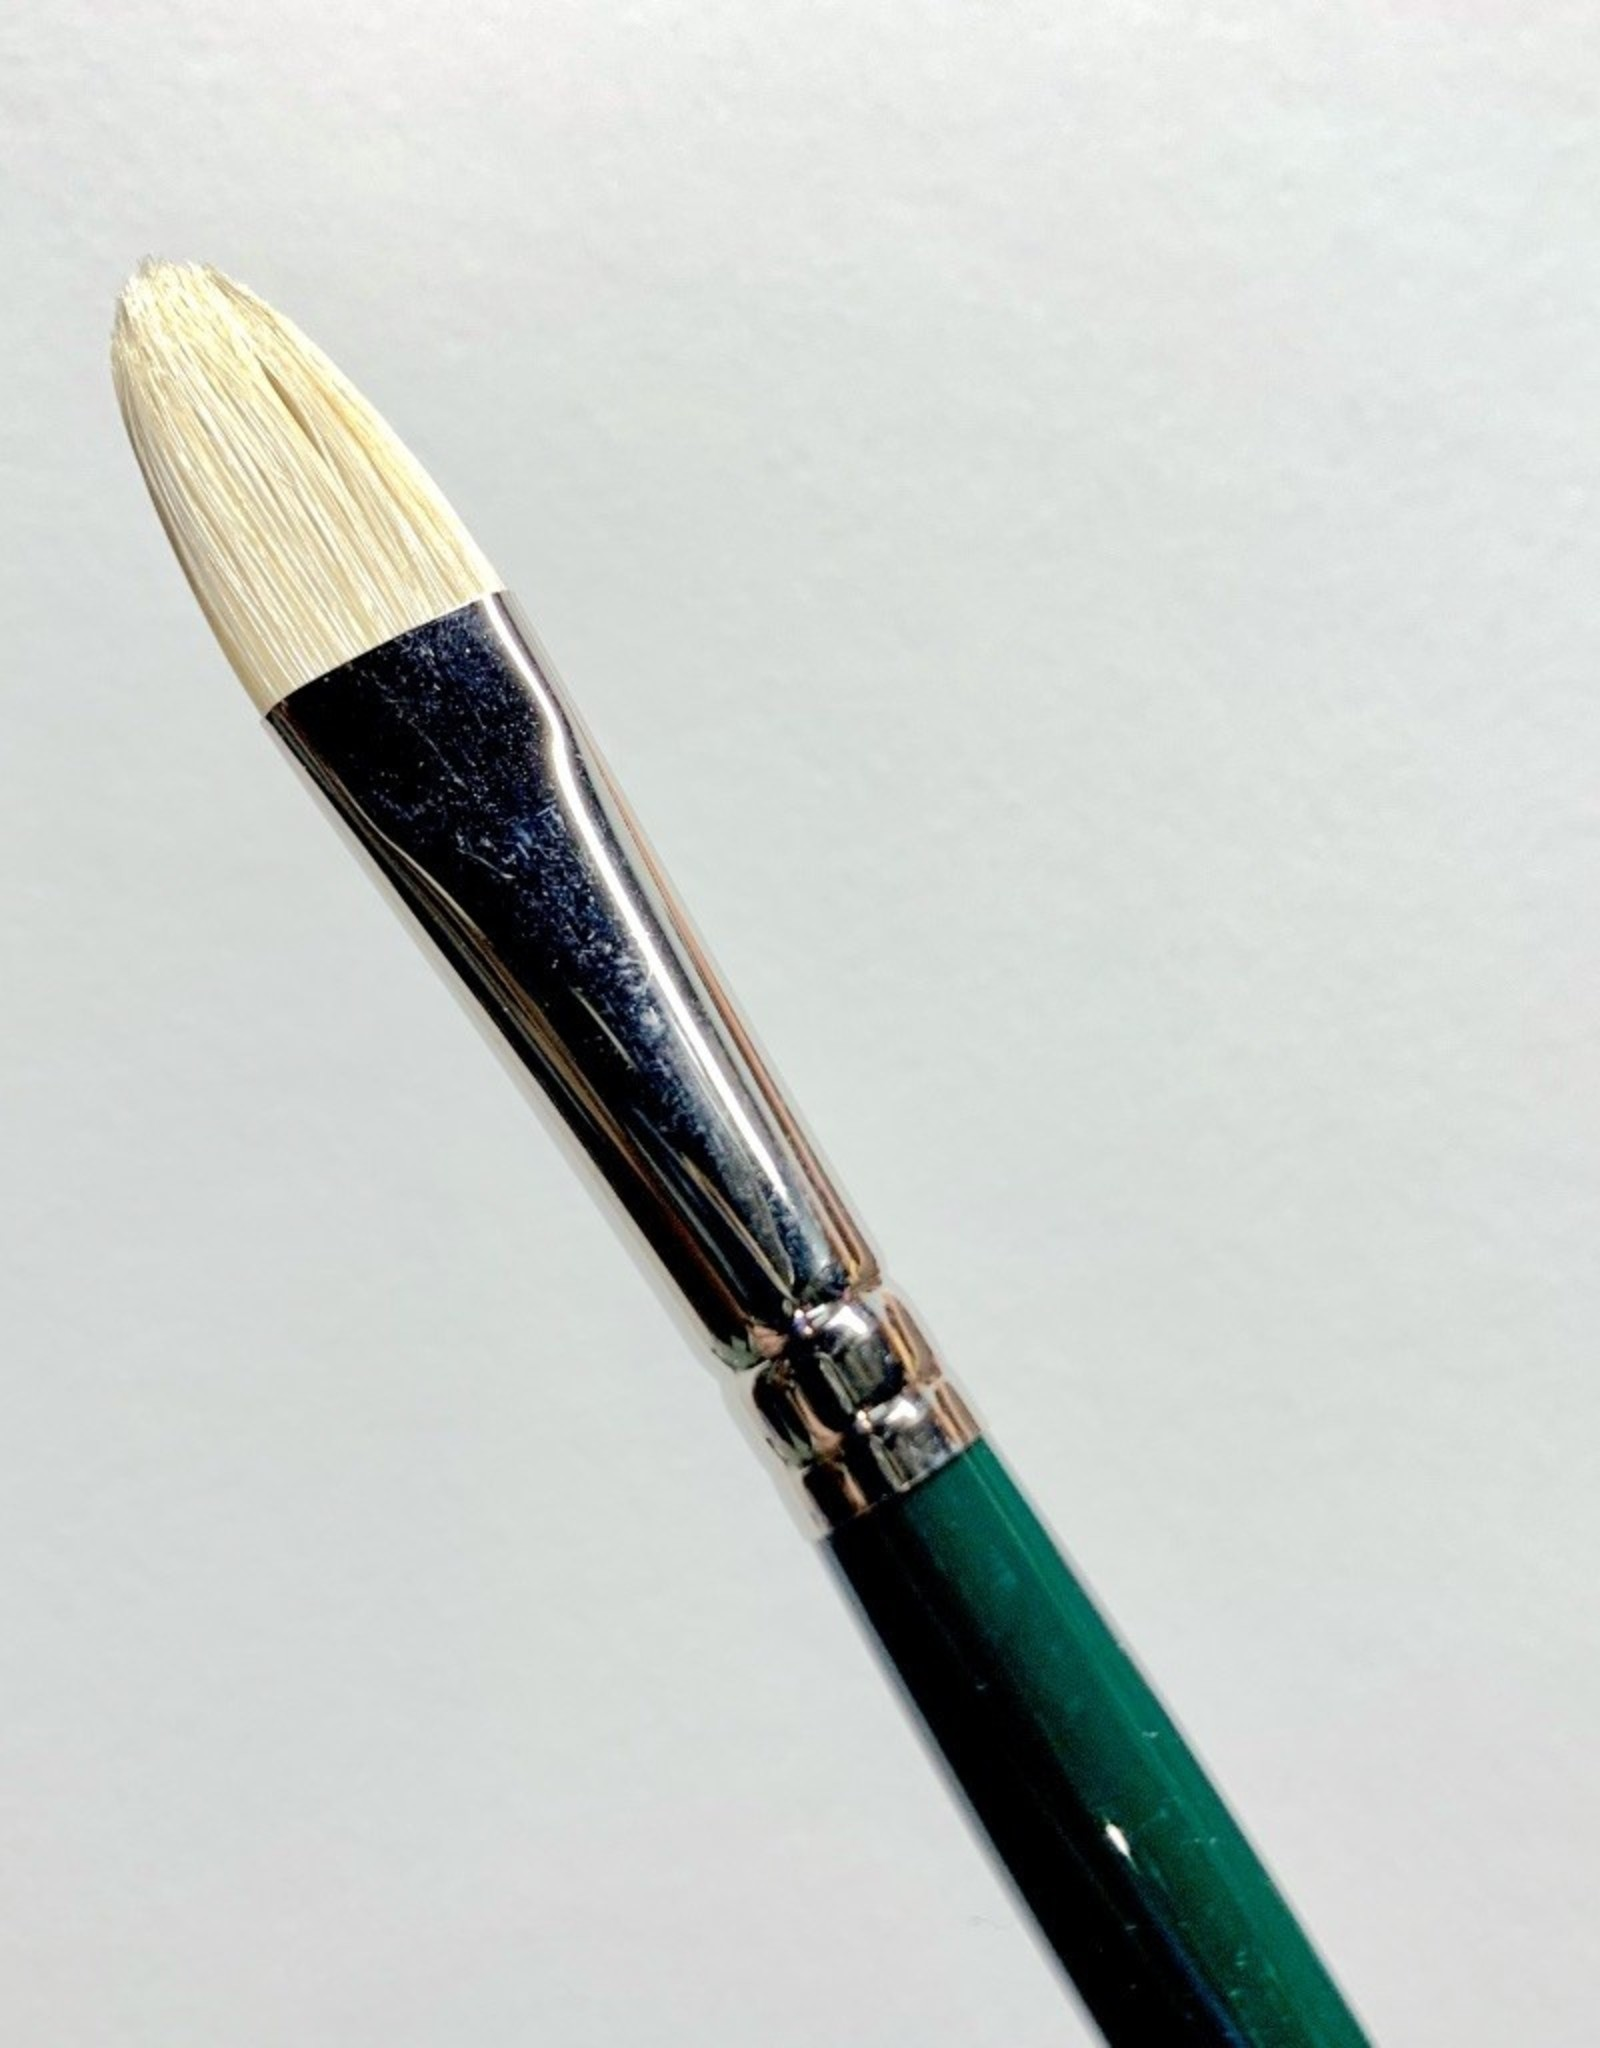 Winsor & Newton Brush, Filbert 8, Hog Hair for Oil or Acrylic Paint Bristle